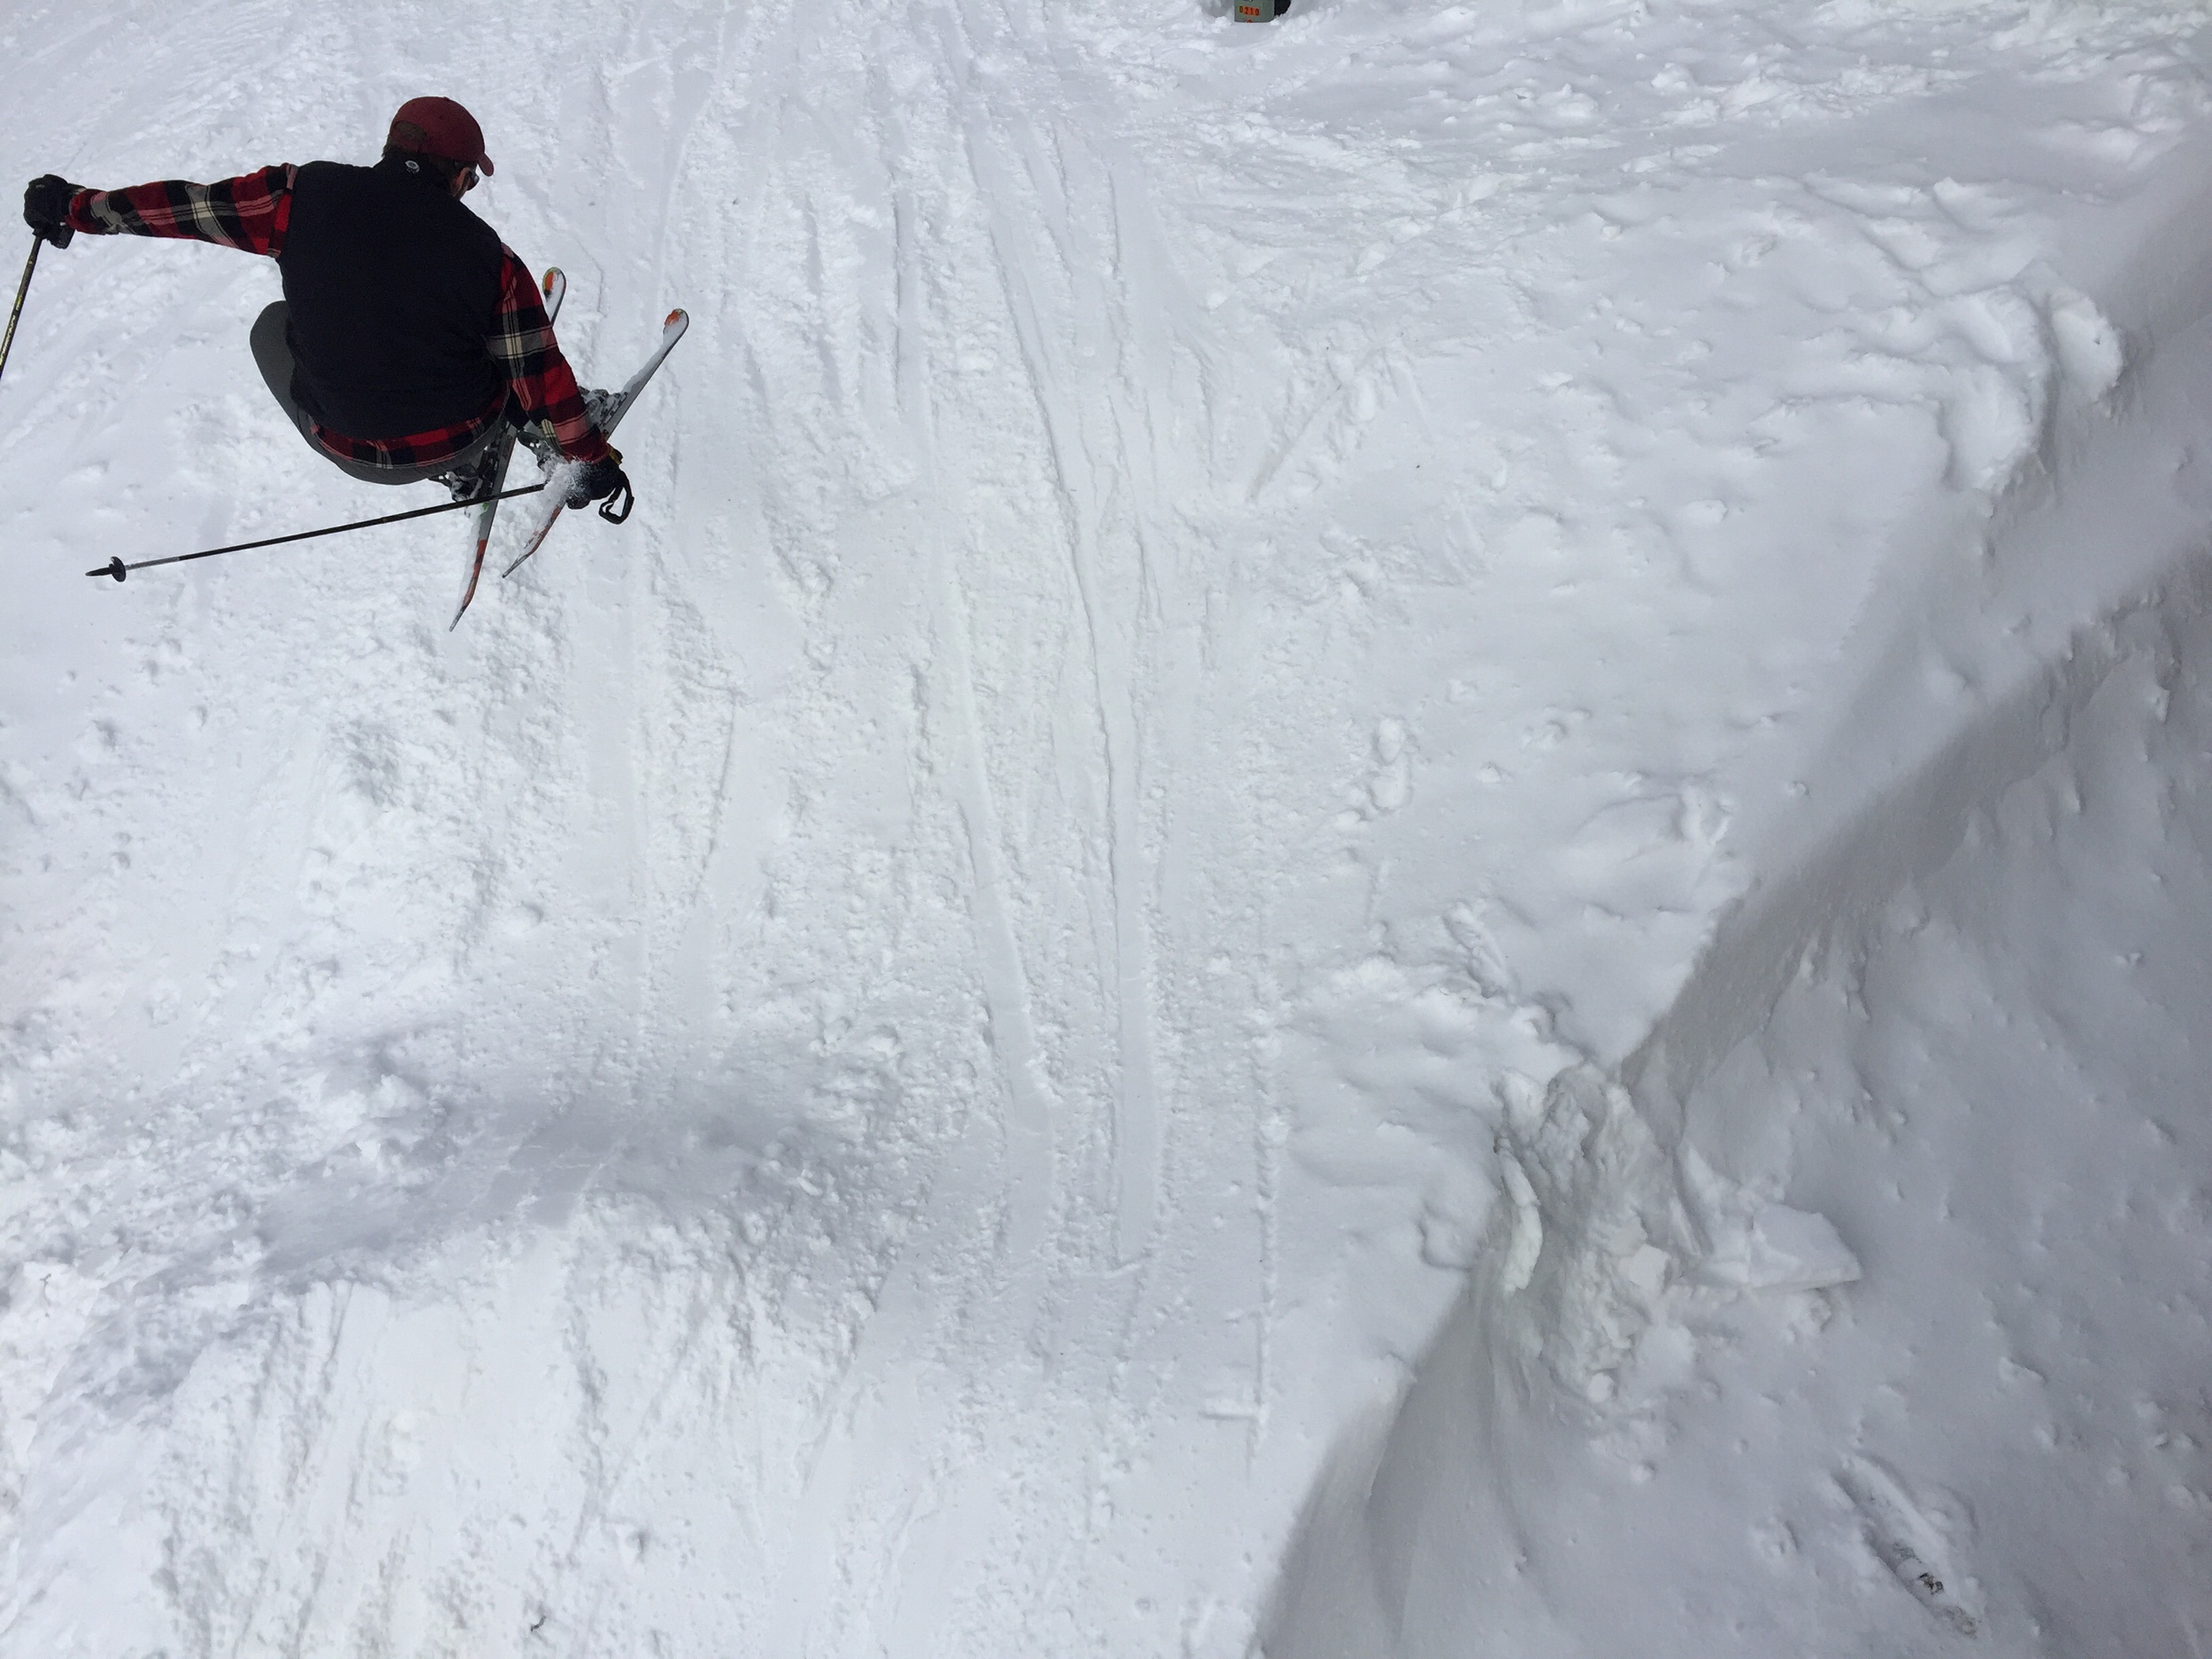 Image taken on a deck while skier jumps below.